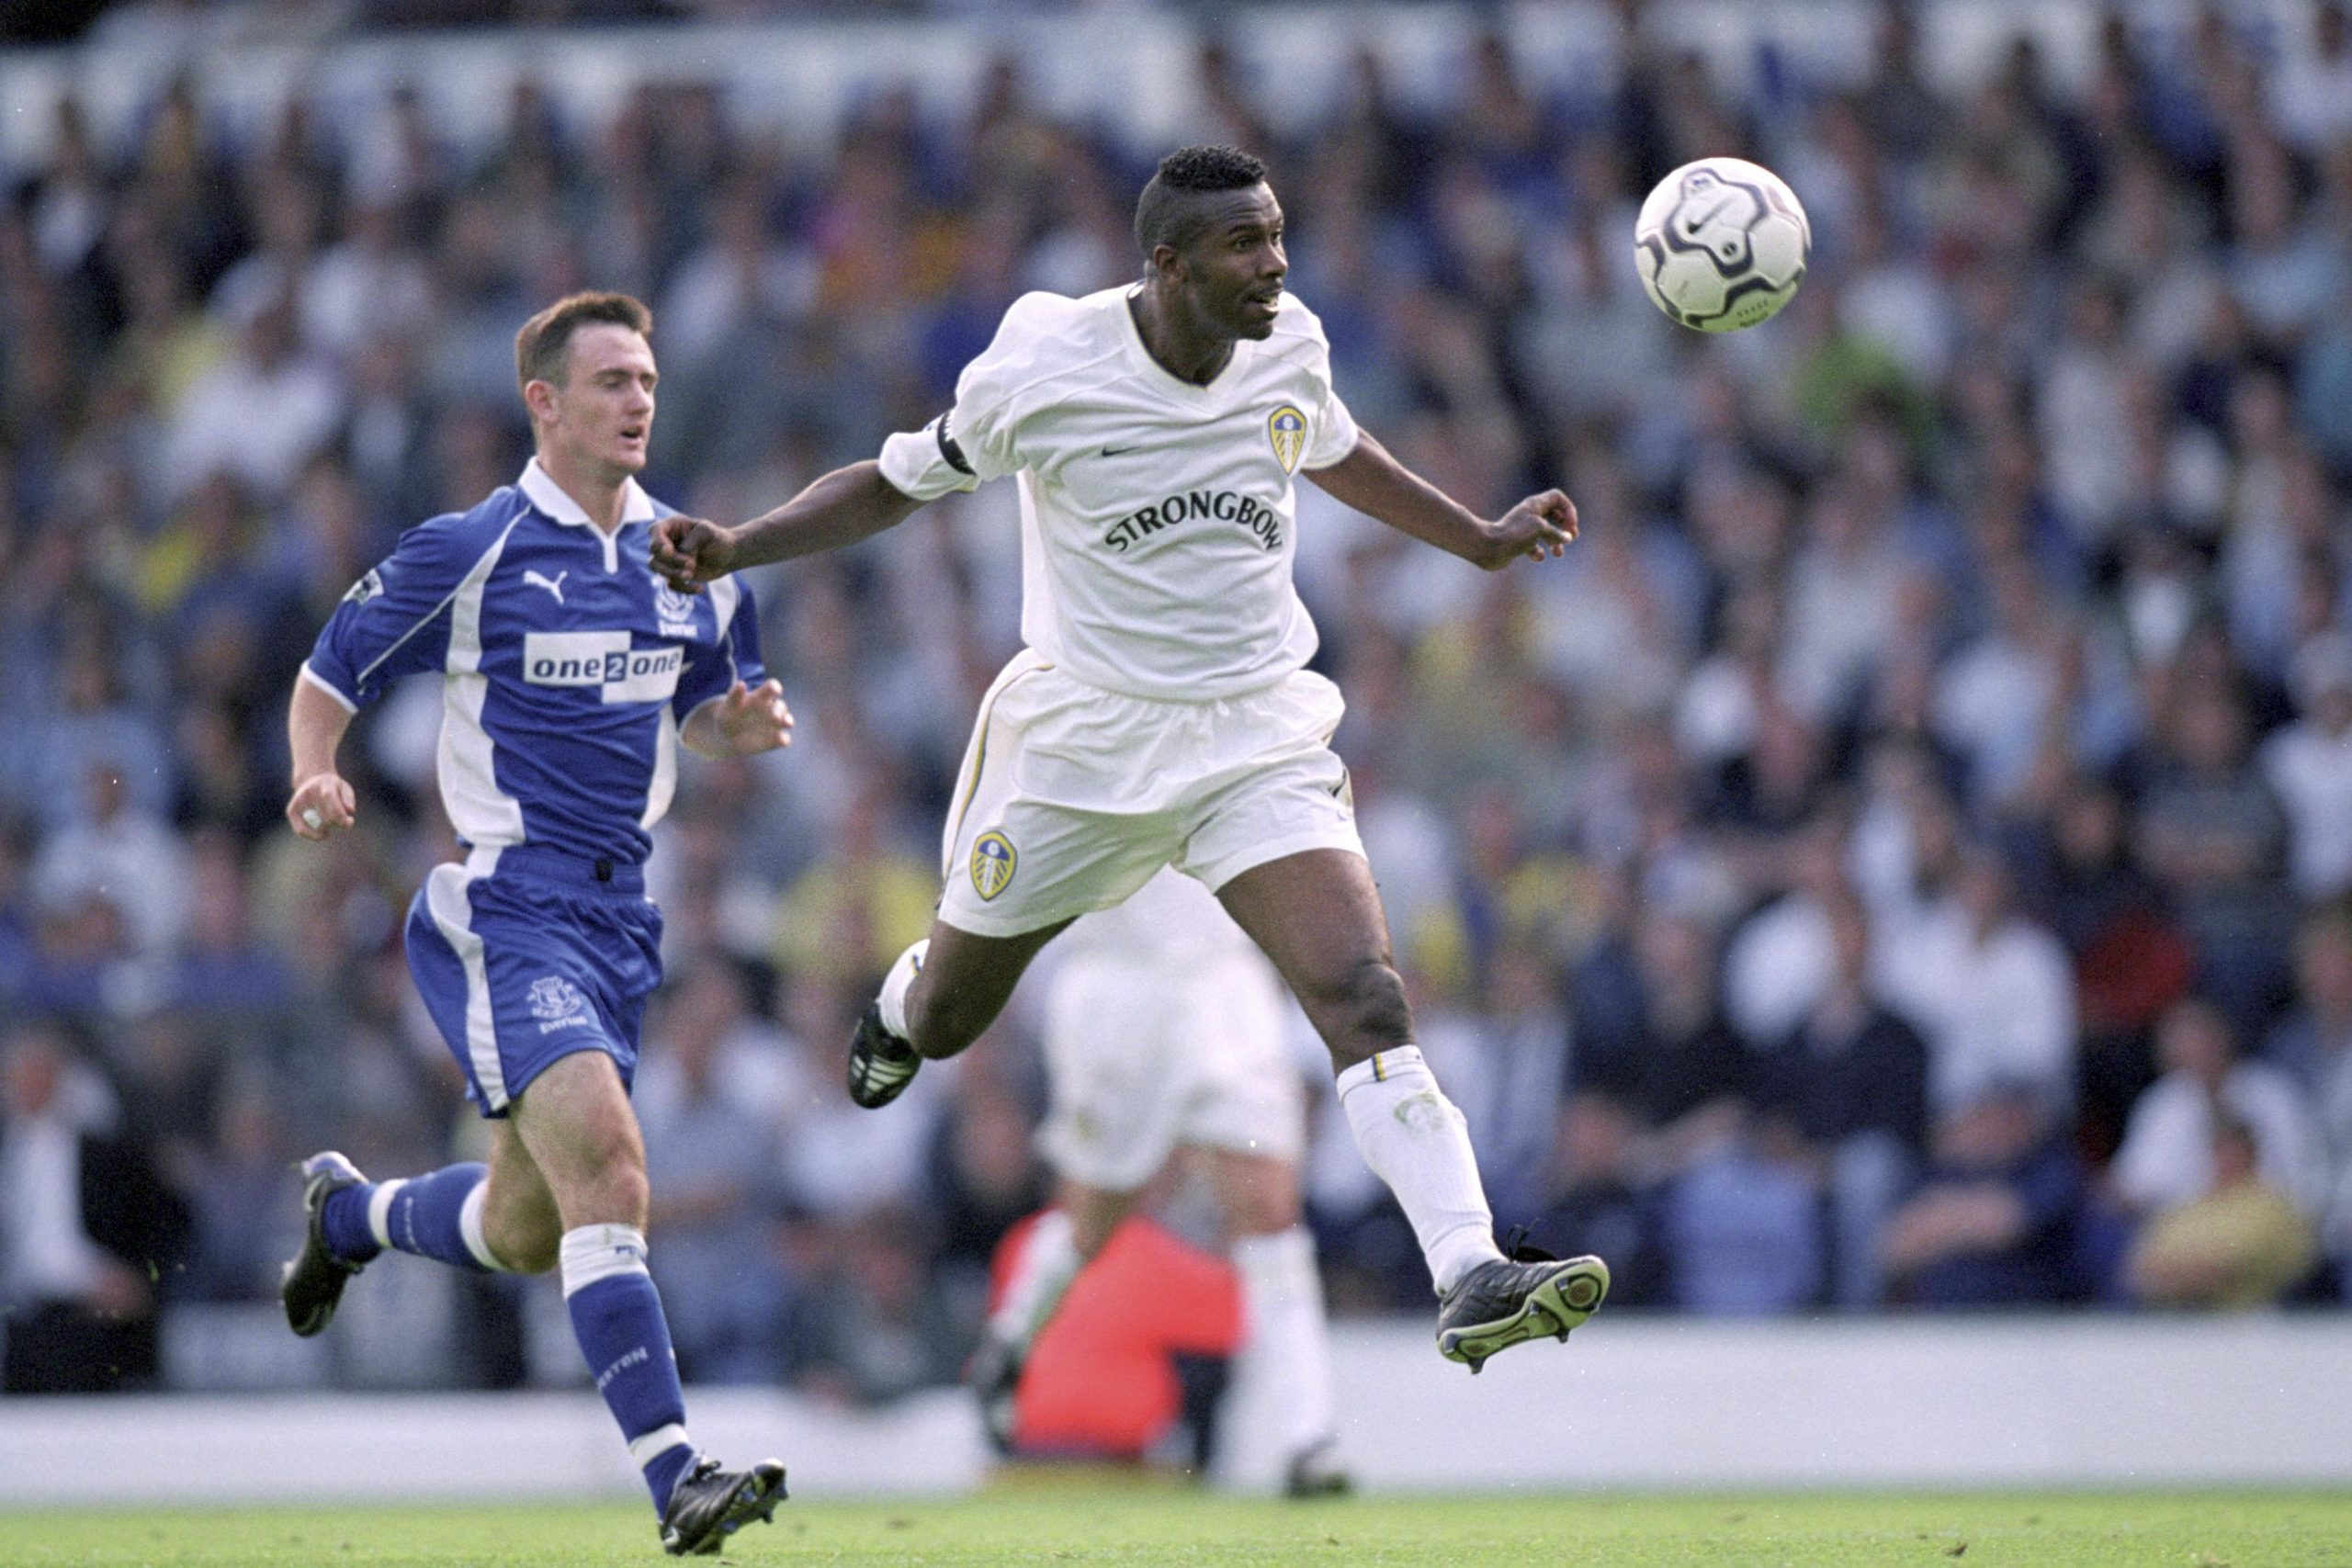 19 Aug 2000: Lucas Radebe of Leeds United heads away from Francis Jeffers of Everton during the FA Carling Premiership match at Elland Road in Leeds, England. (Photograph by Michael Steele/ Allsport)